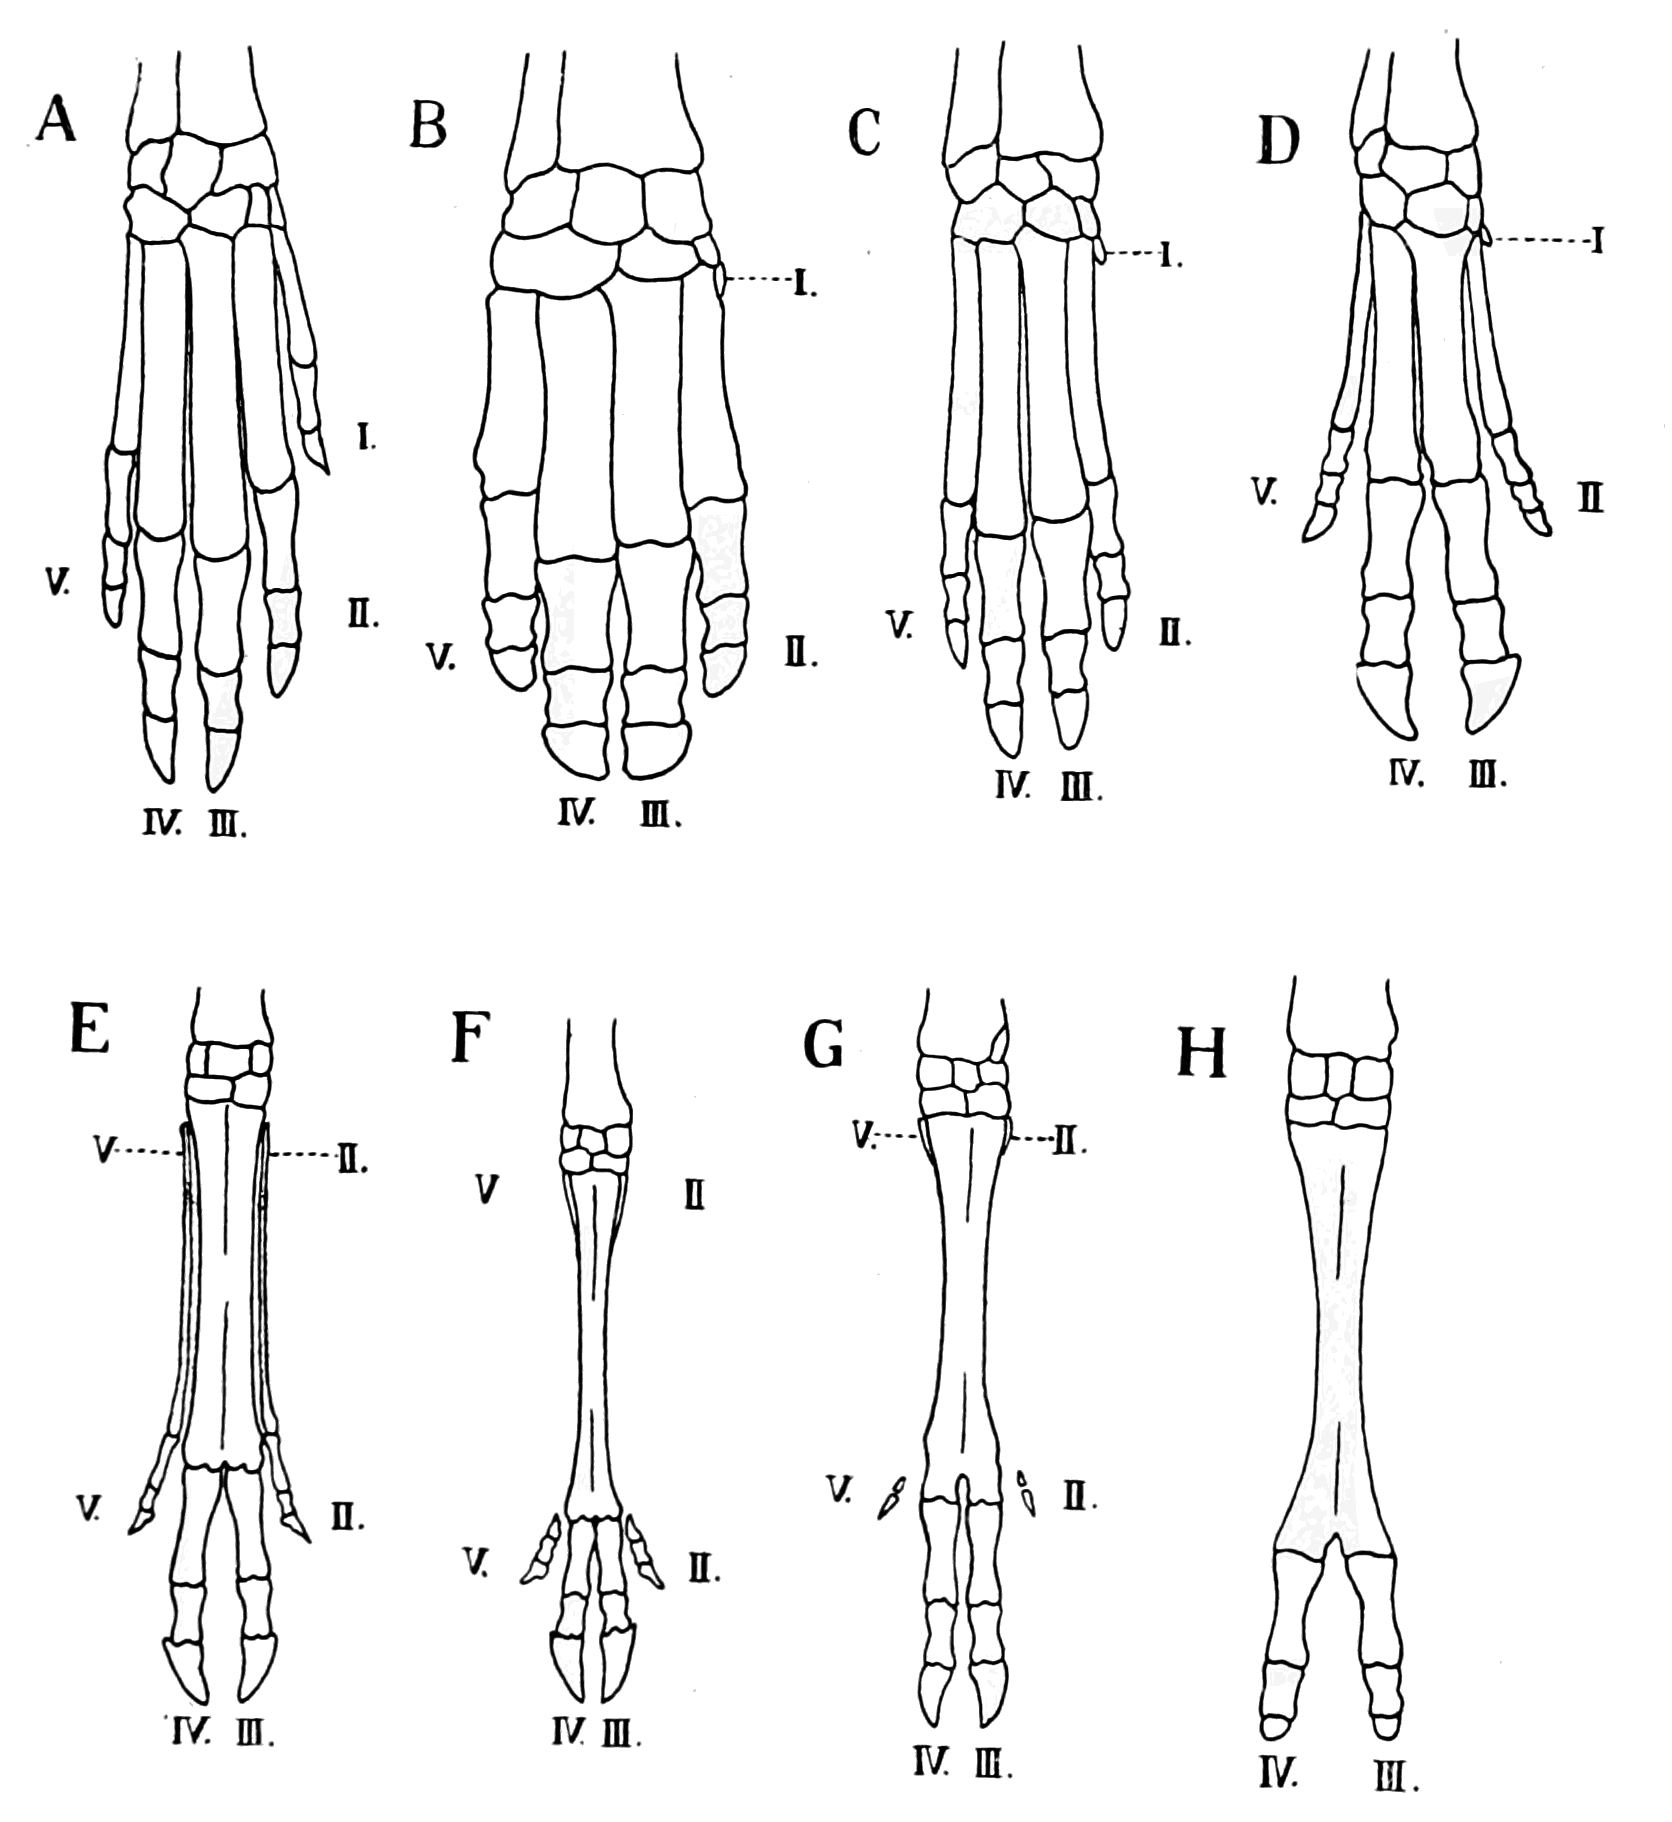 PSM V68 D347 Series of arteriodactyl extremities showing the reduction of digits.png